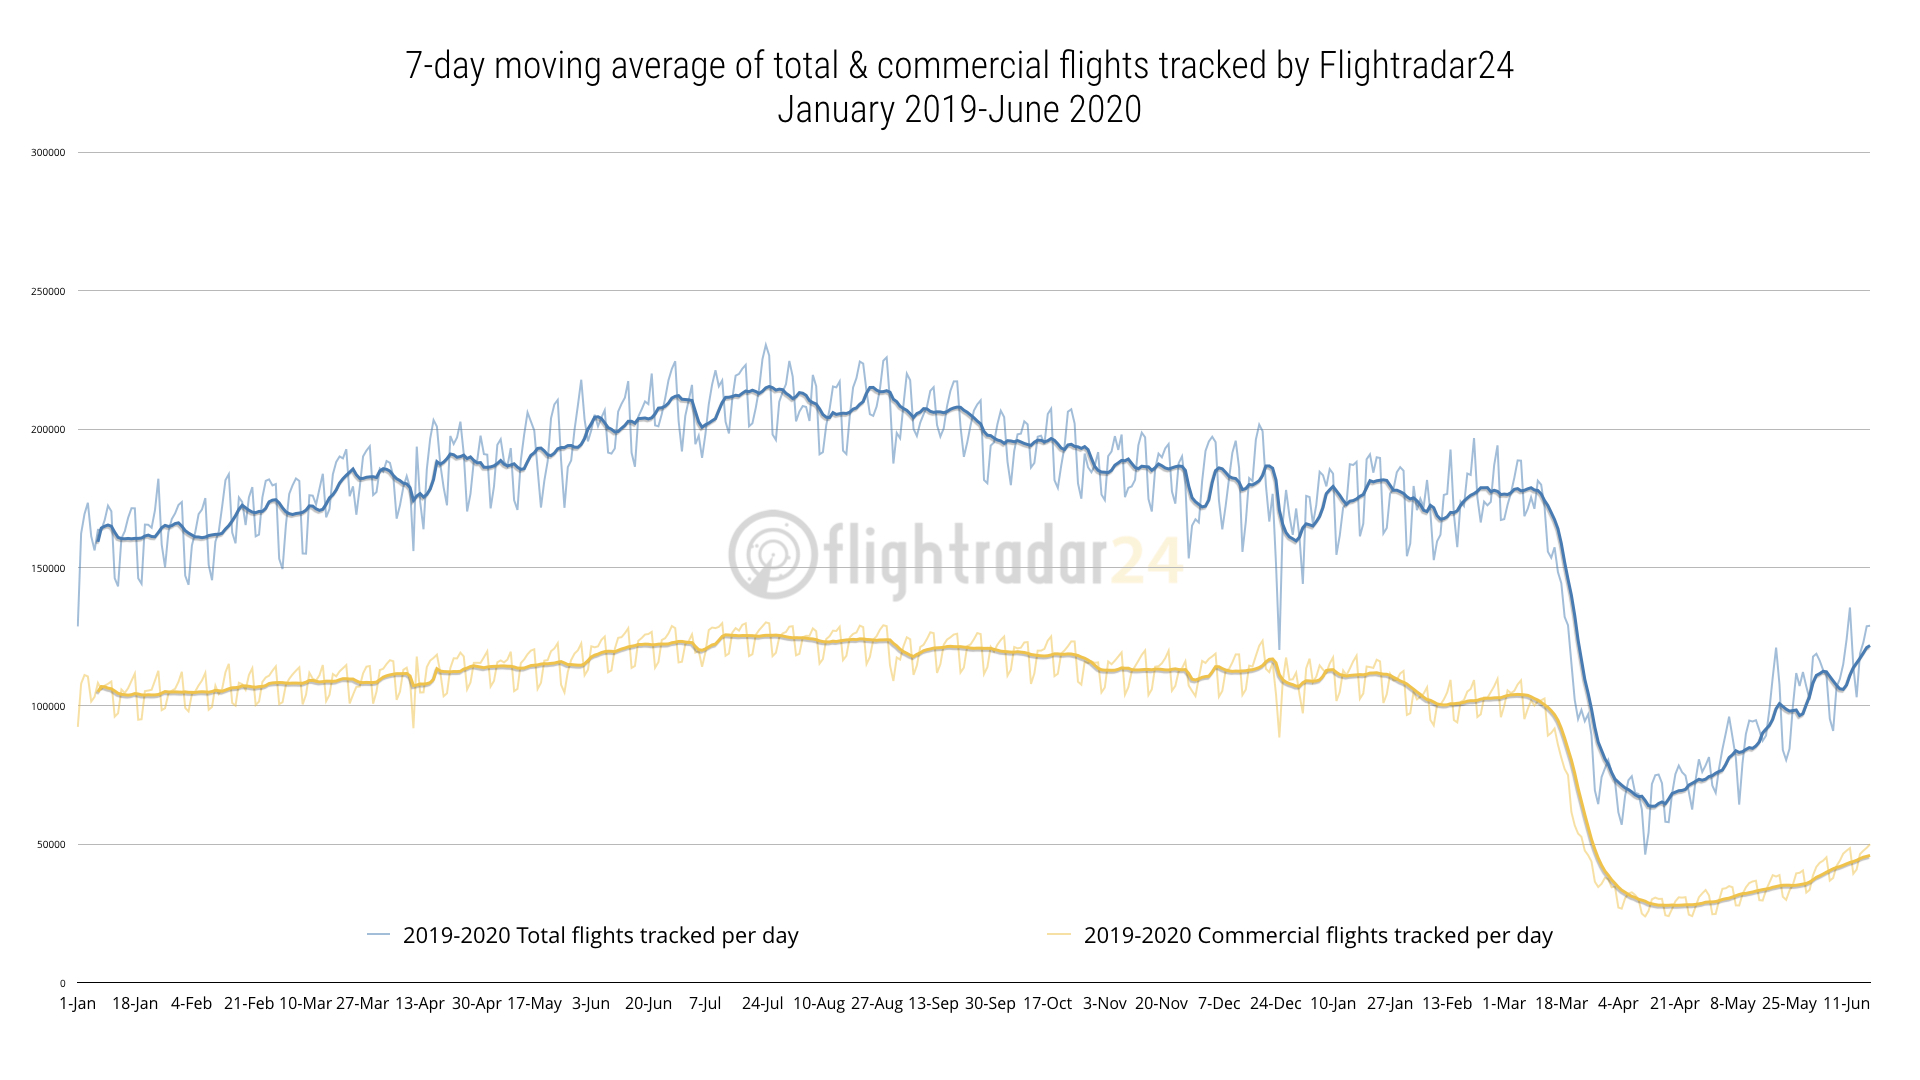 2019-2020 total and commercial flights